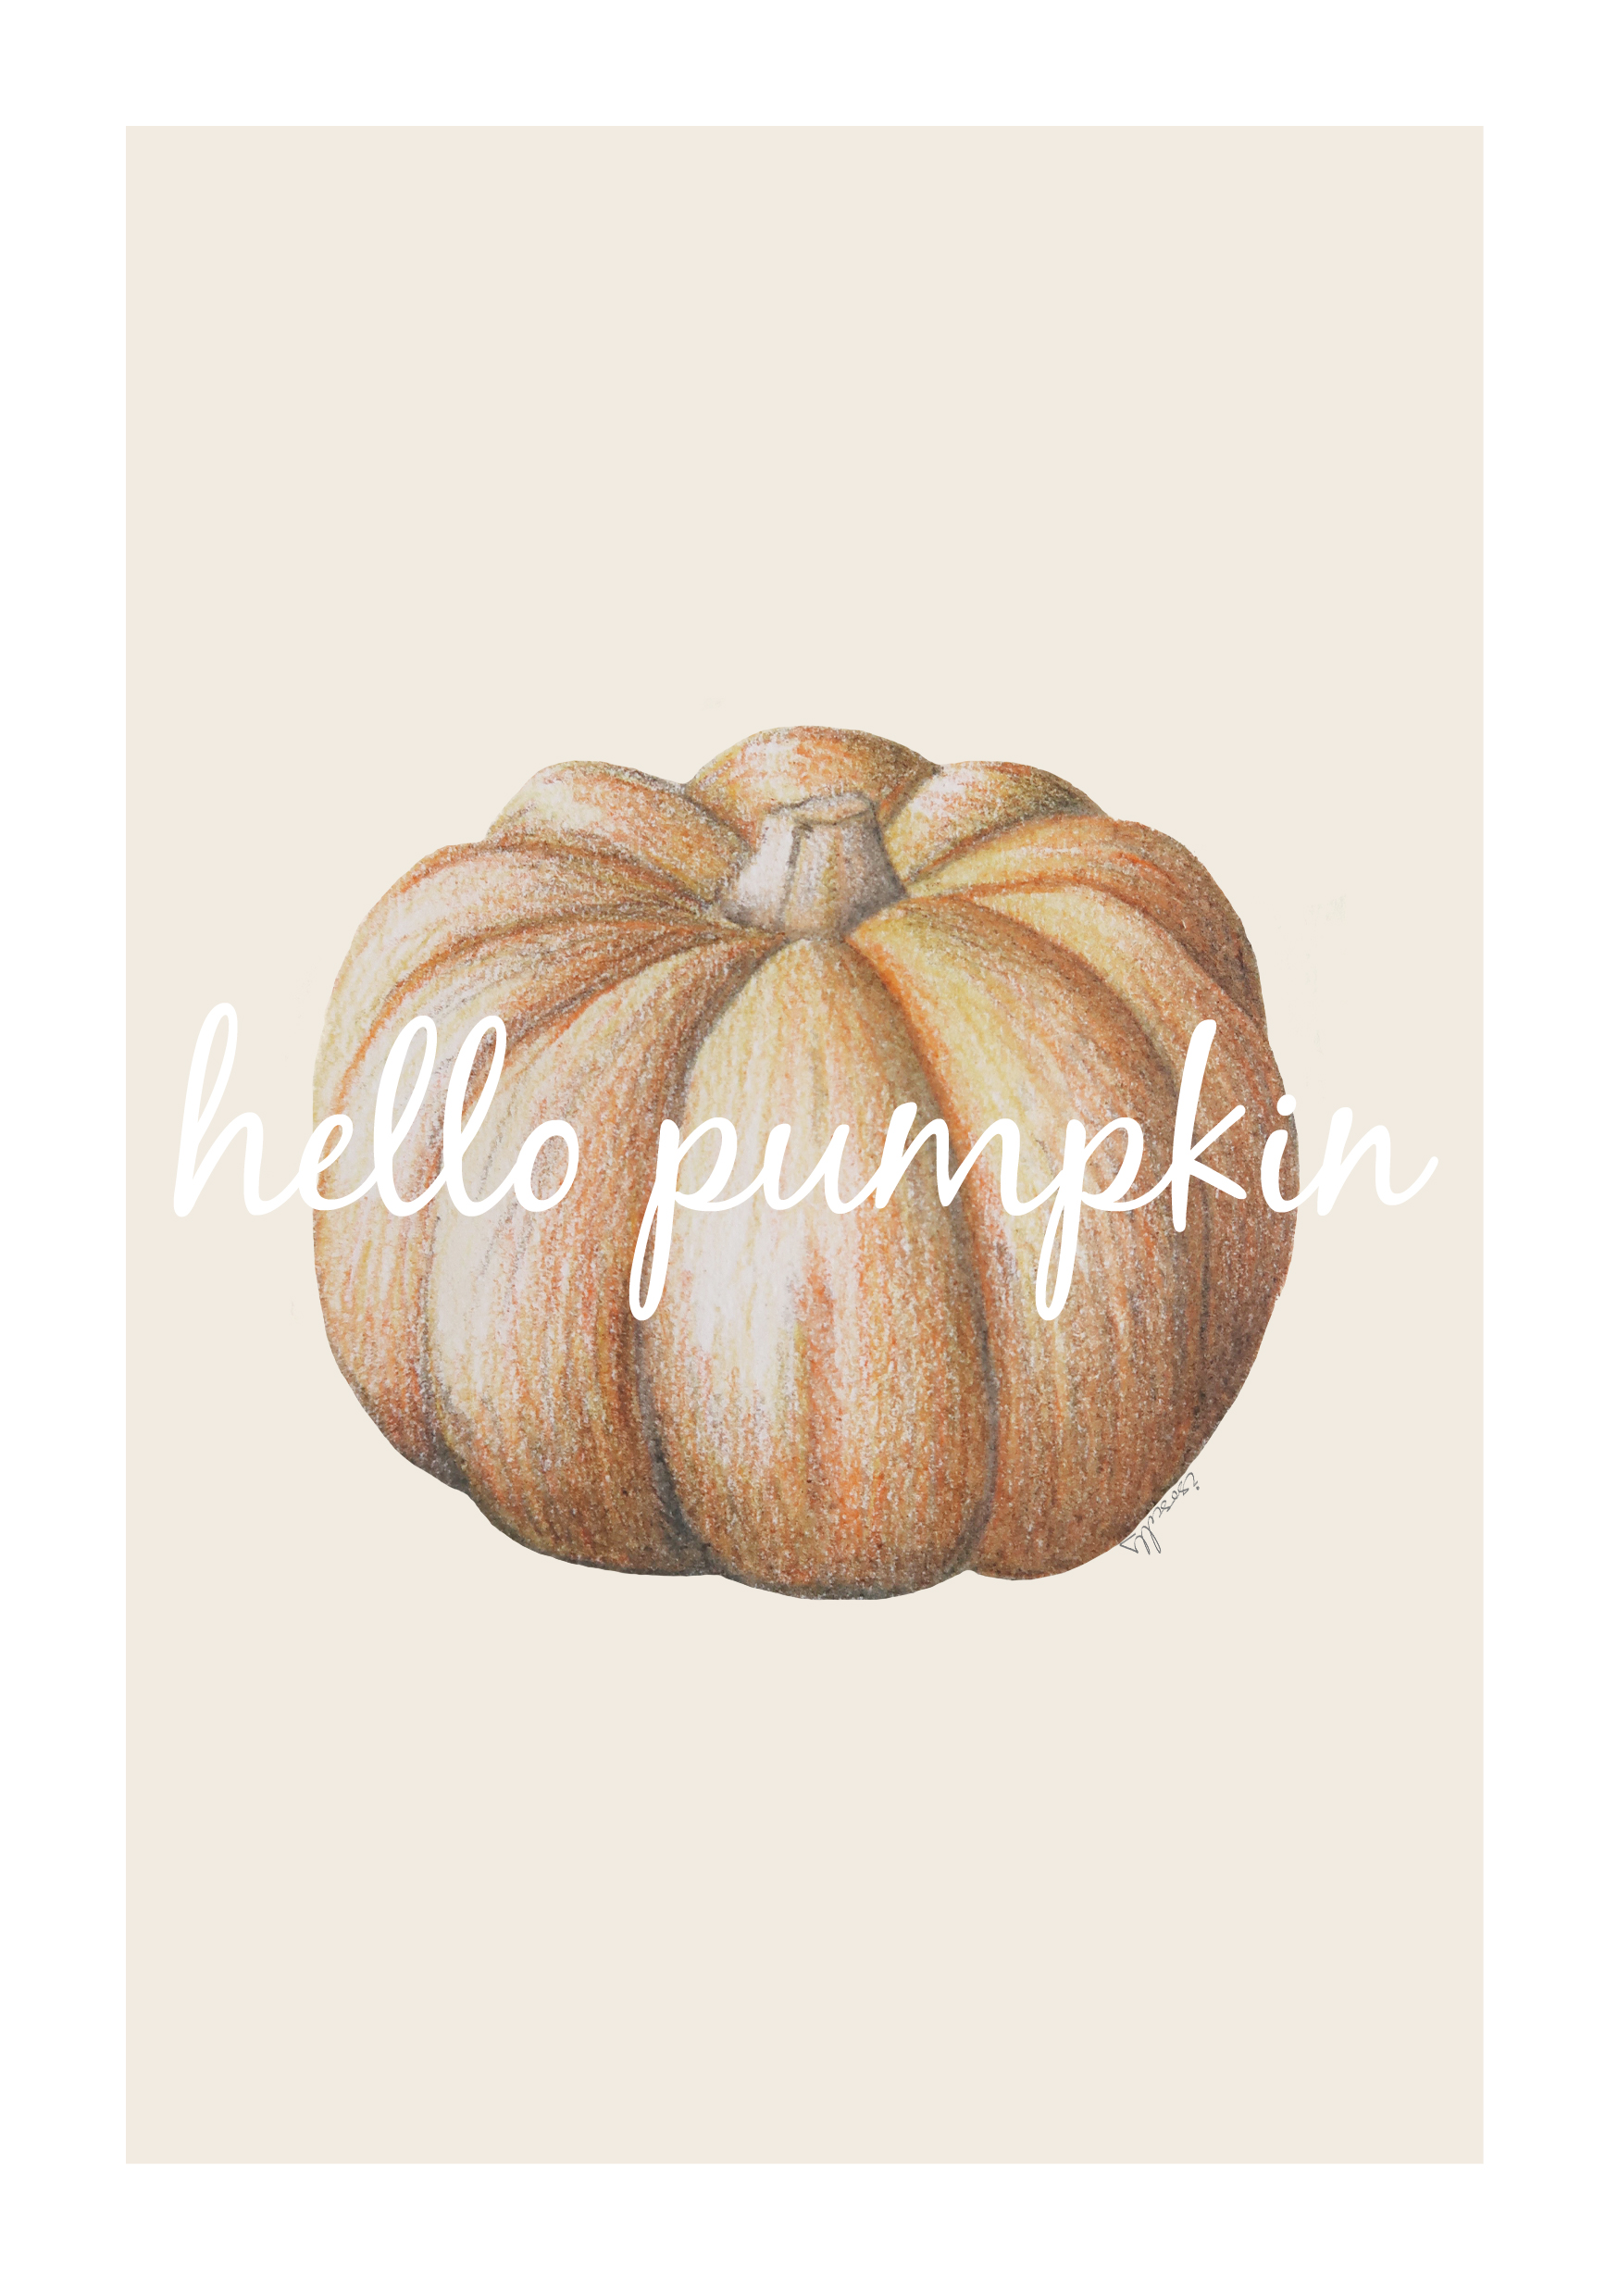 Printable Pumpkin Art Print by Isoscella.jpg